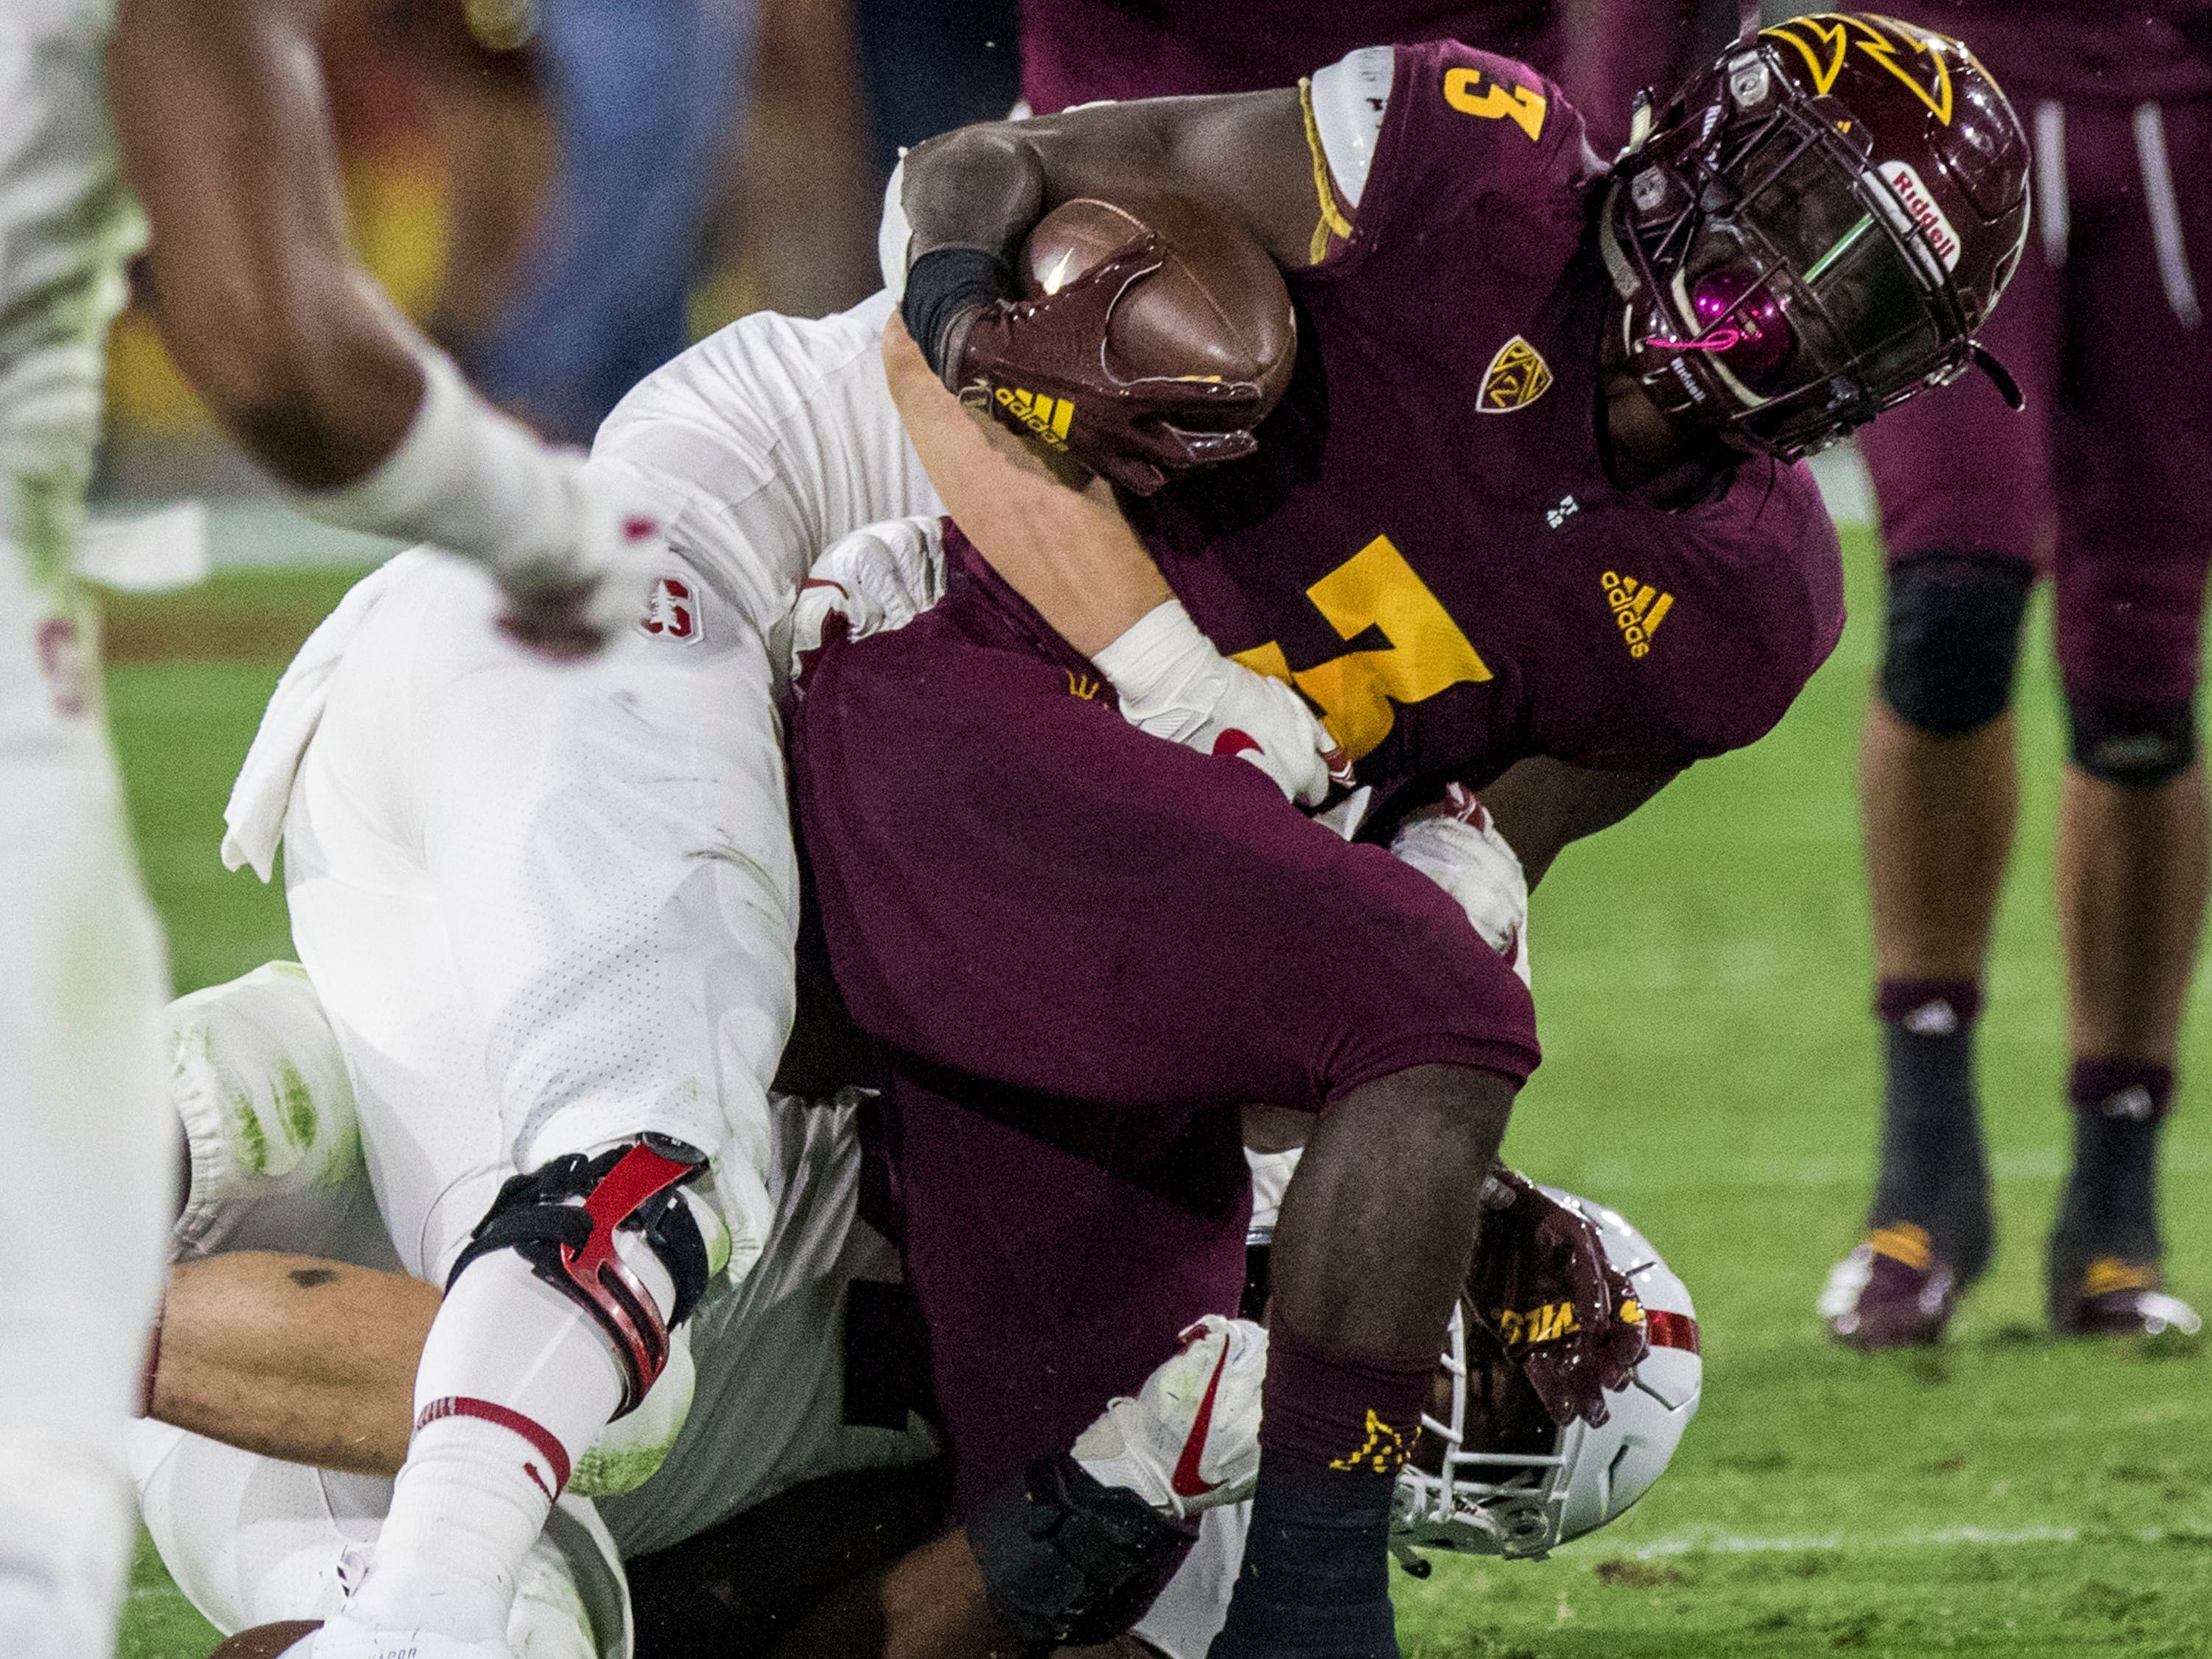 Arizona State's Eno Benjamin gets tackled by Stanford's Michael Williams during the first half of an NCAA college football game Thursday, Oct. 18, 2018, in Tempe, Ariz.